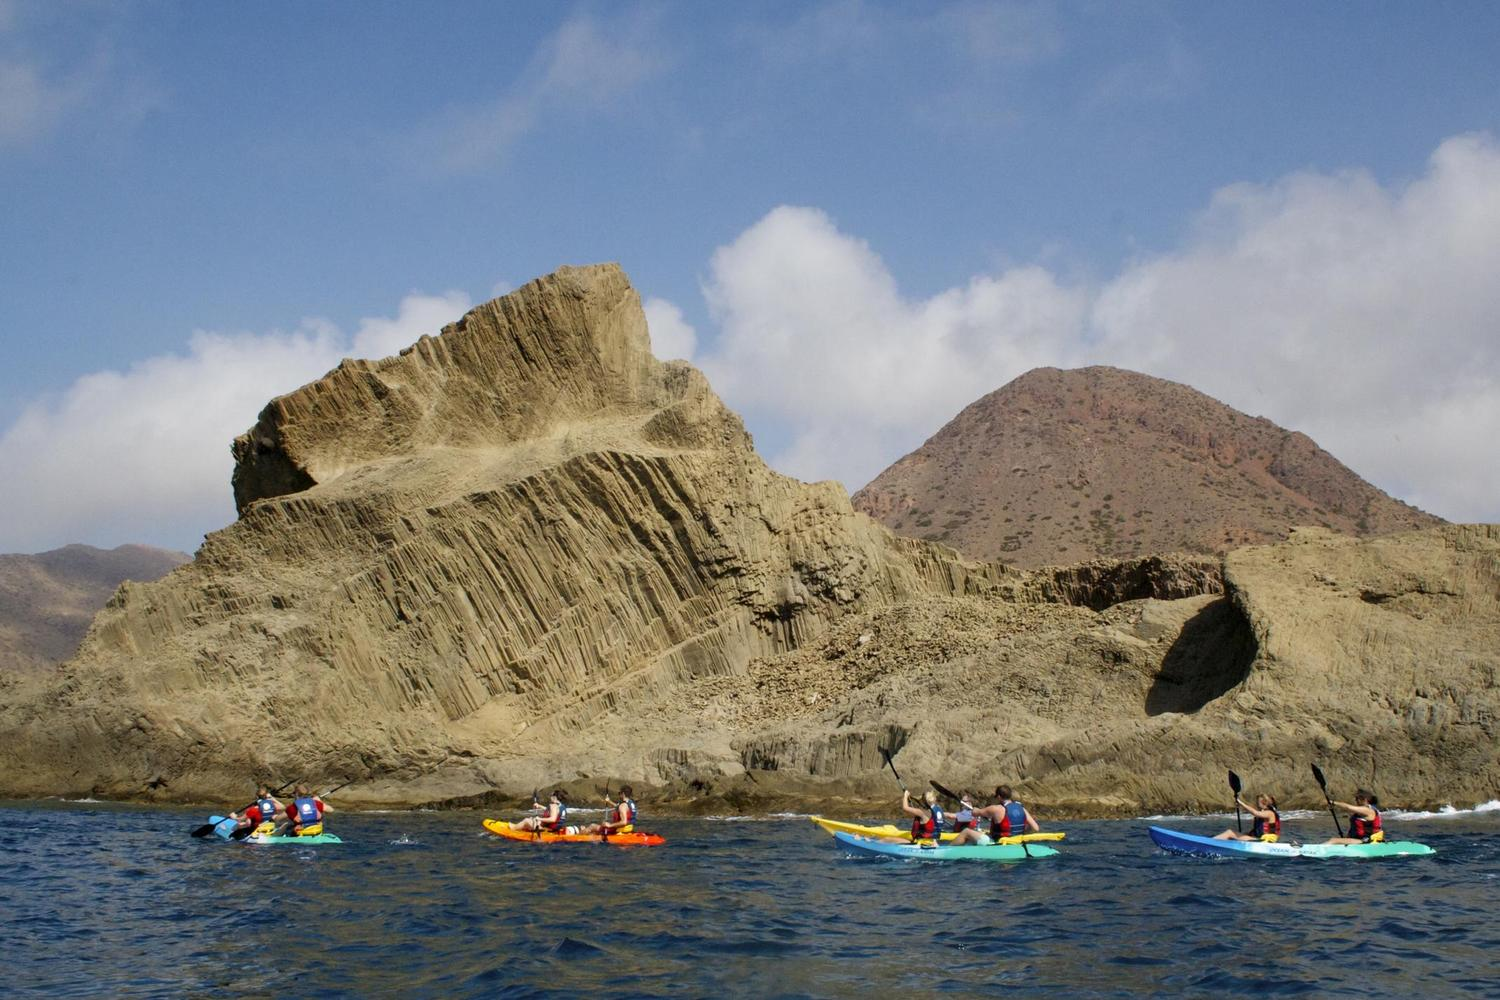 Kayaking around the cape of Cabo de Gata